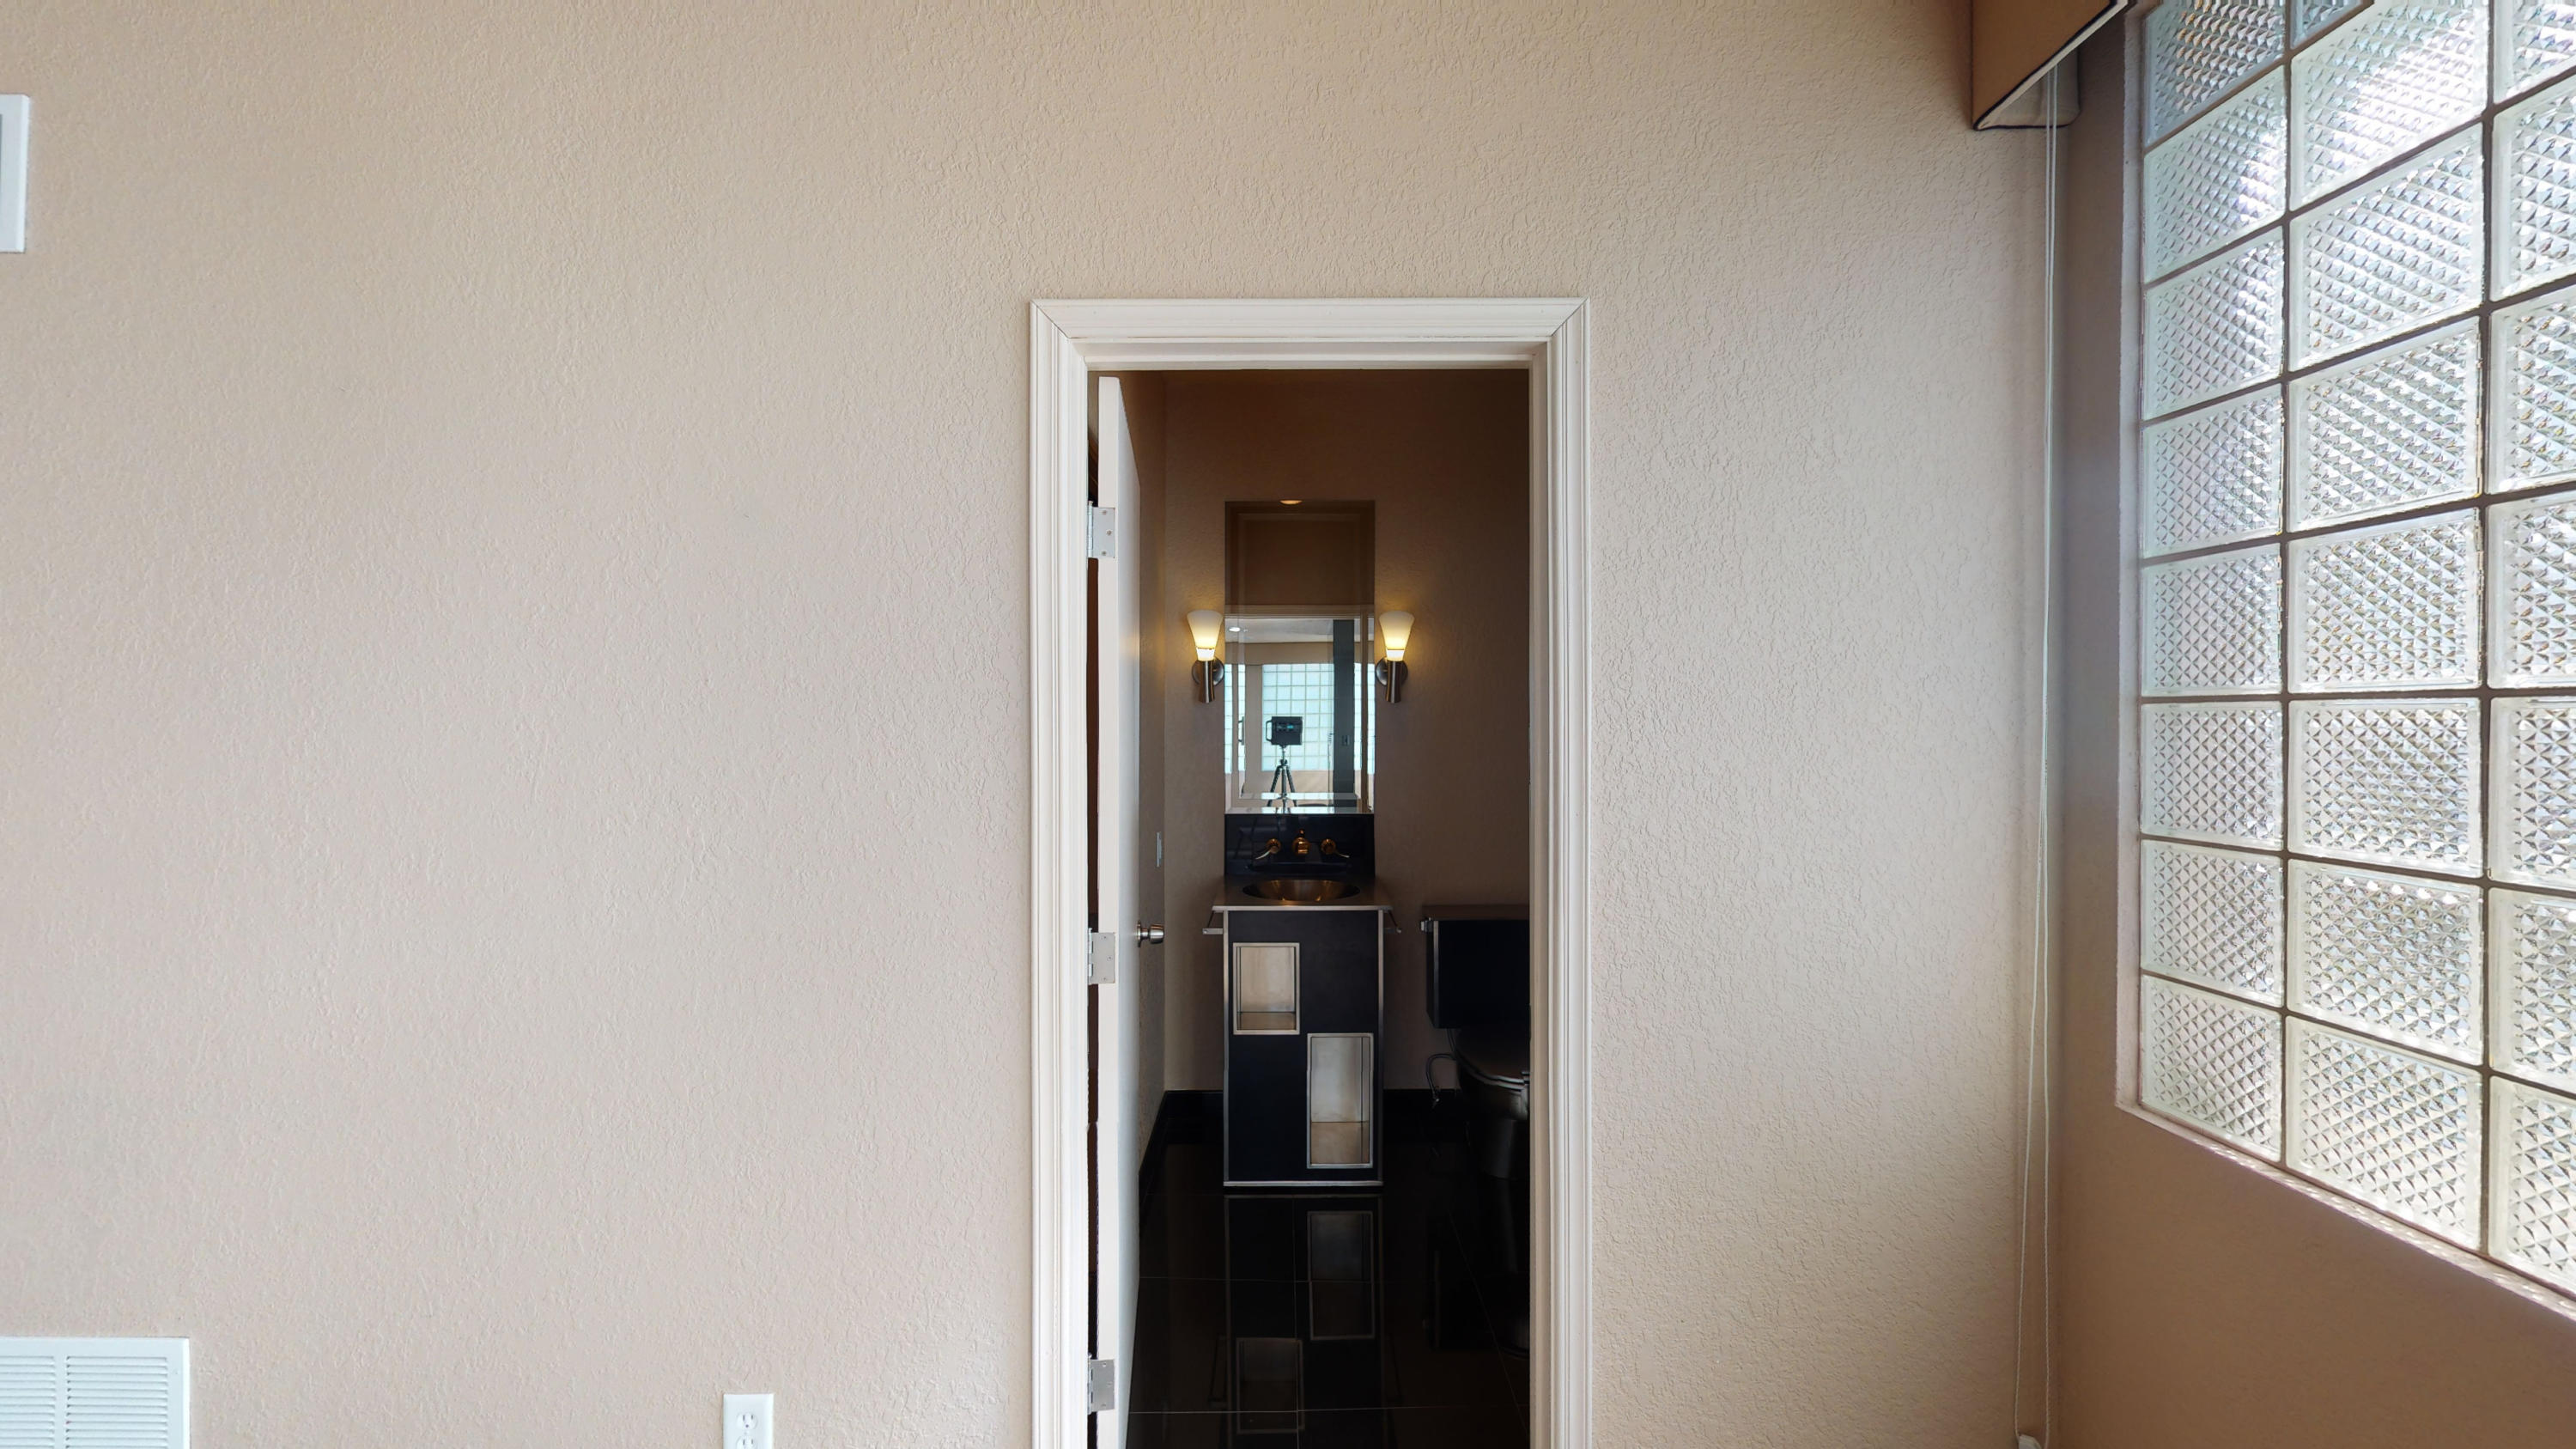 800 Singing Hills, El Paso, Texas 79912, 4 Bedrooms Bedrooms, ,8 BathroomsBathrooms,Residential,For sale,Singing Hills,757131